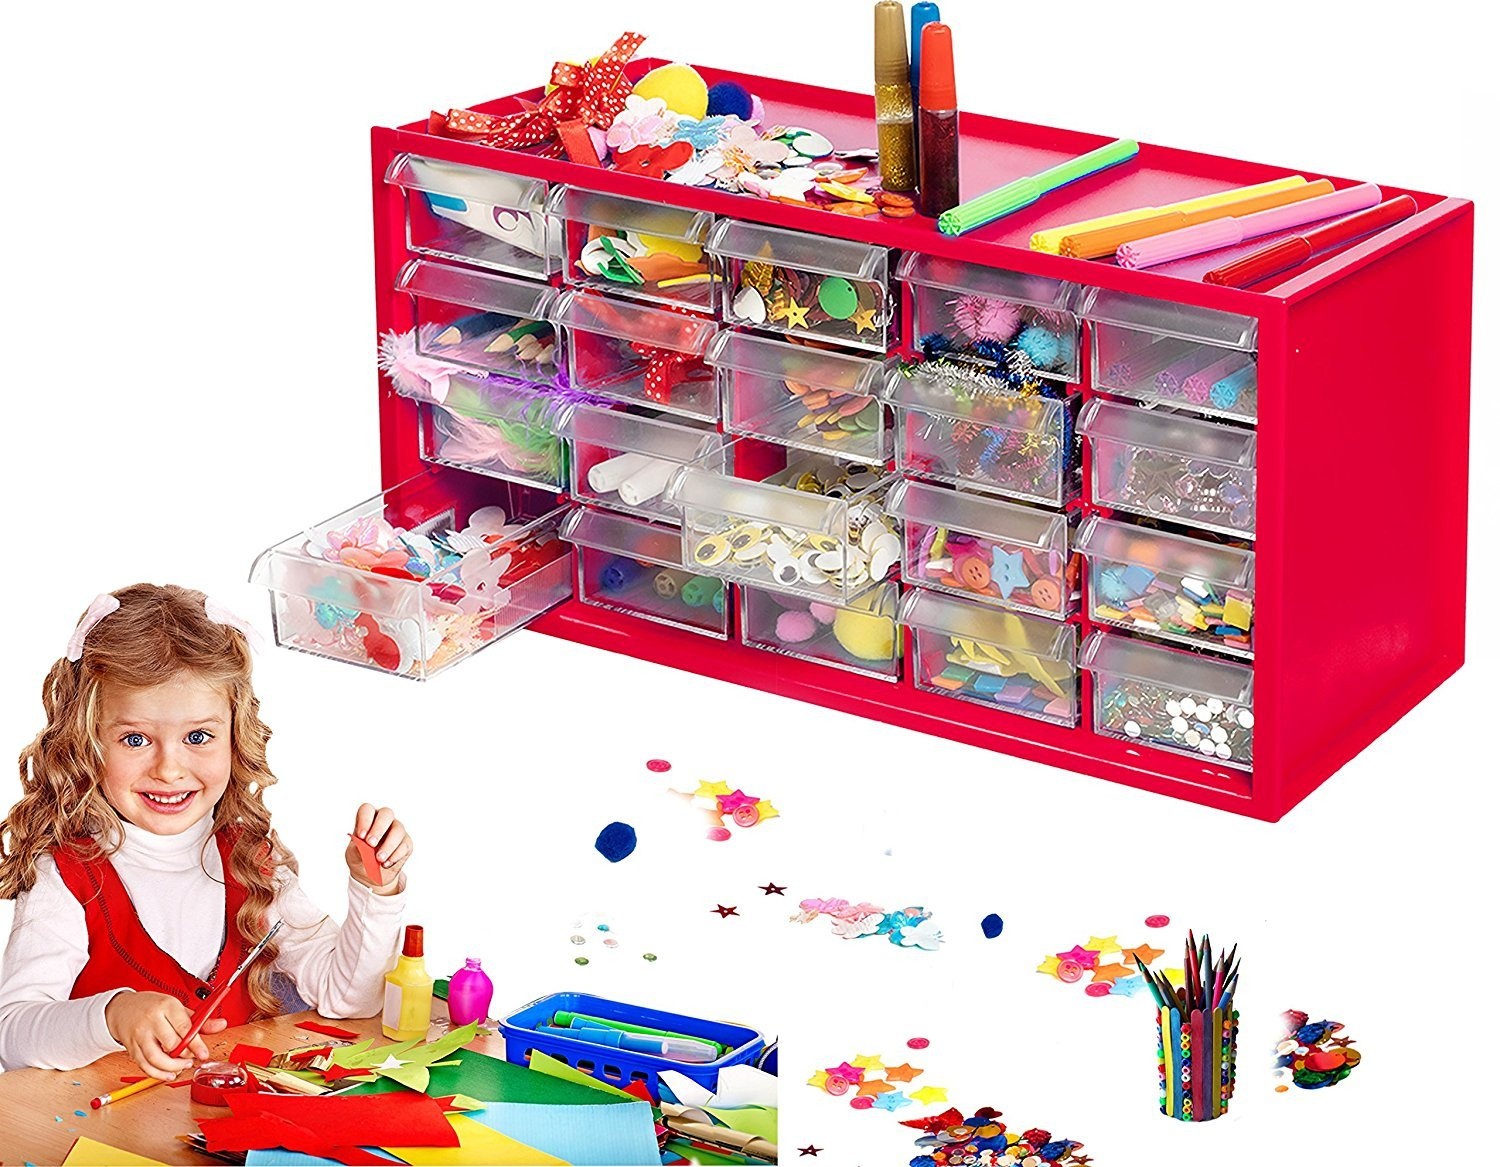 Arts Crafts Supply Center Complete With 20 Filled Drawers Of Craft